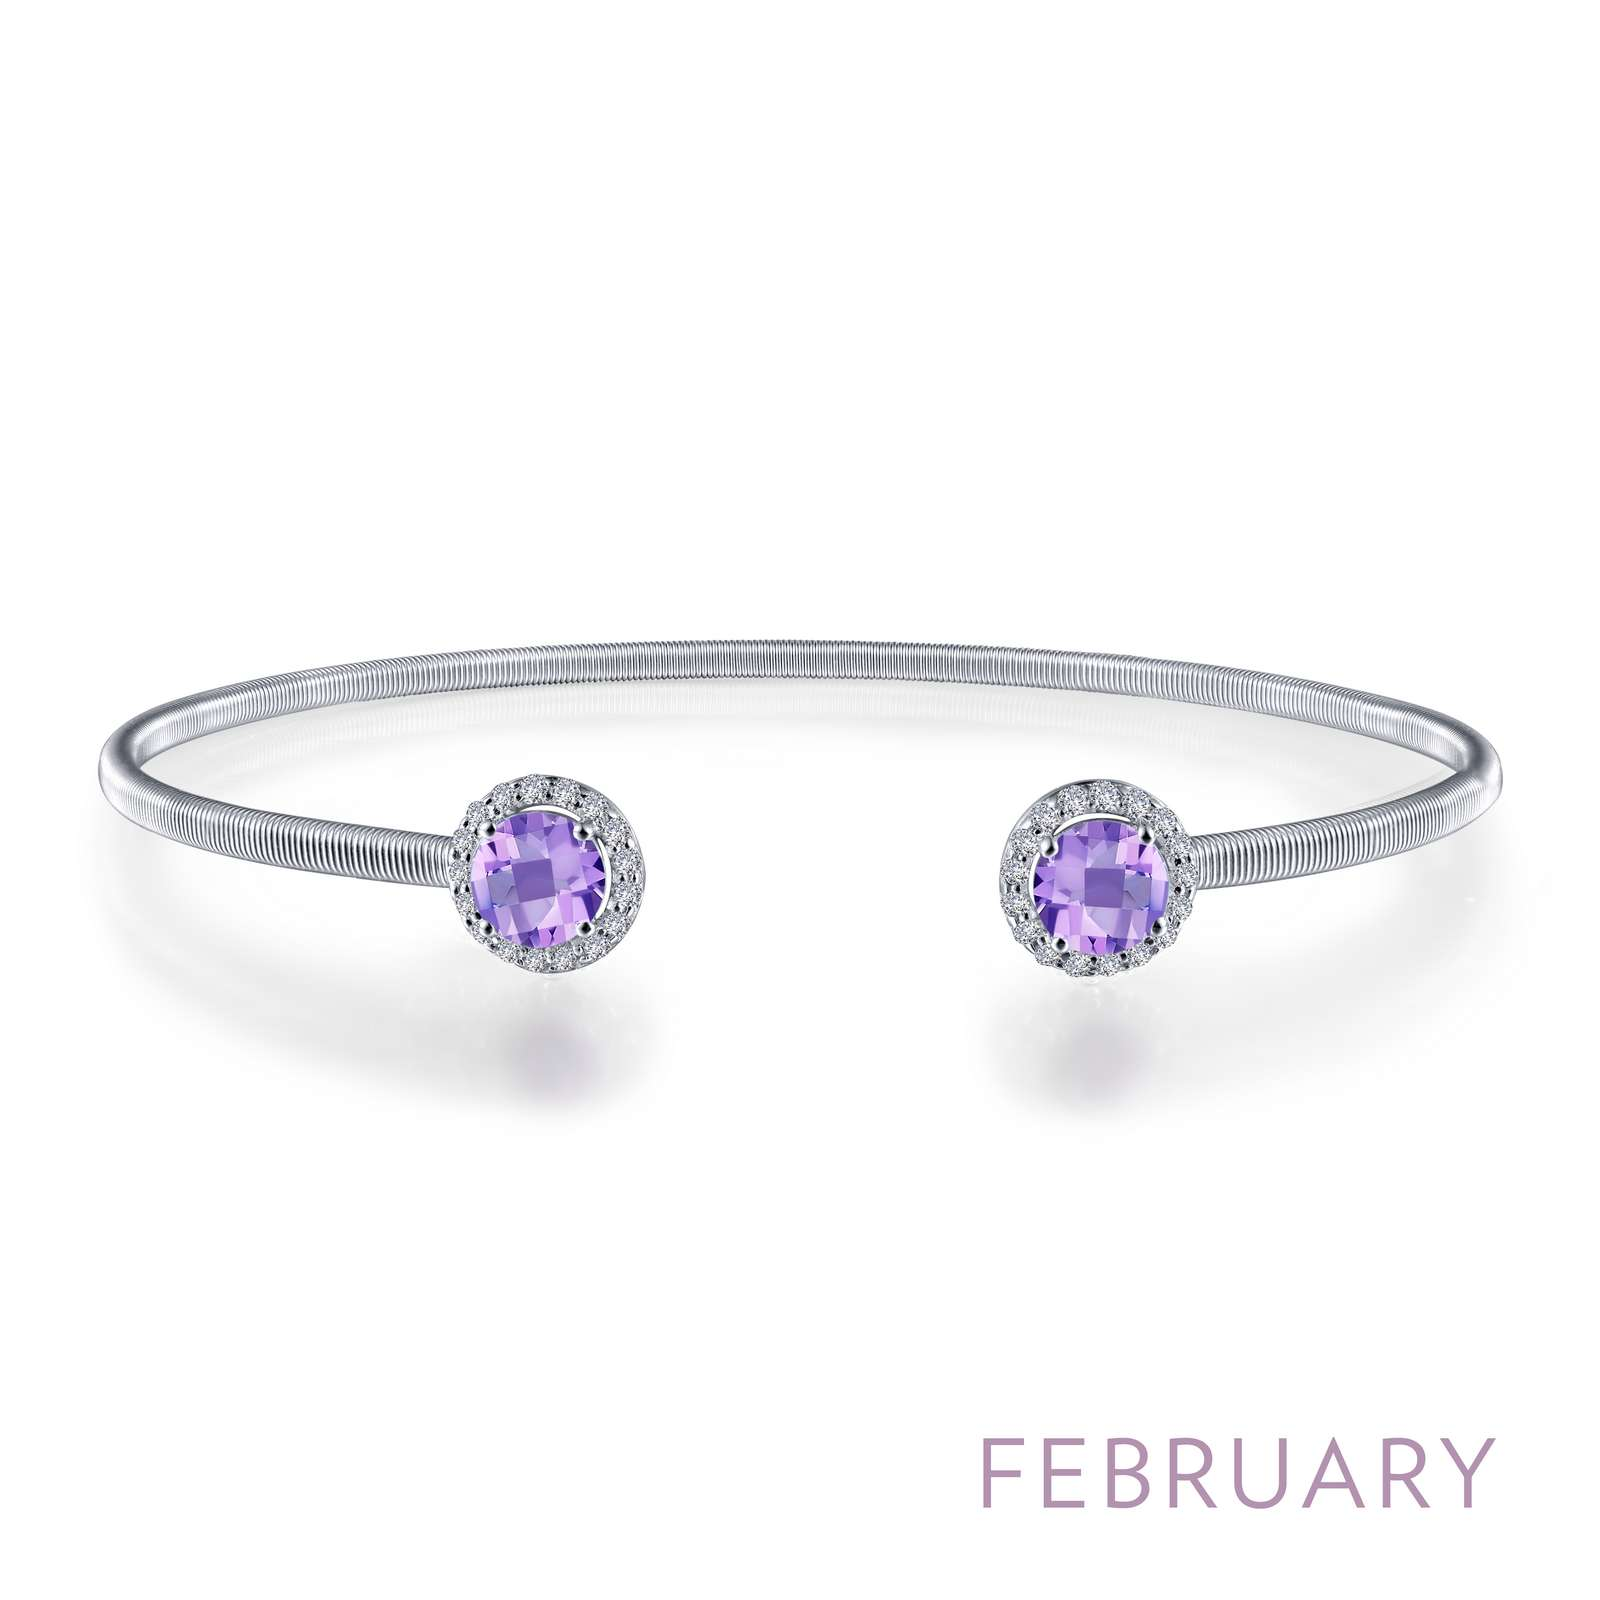 February - Amethyst. Adorn yourself with Lafonn's birthstone jewelry. This flexible stackable open cuff halo bangle bracelet is set with Lafonn's signature Lassaire simulated diamonds and genuine amethysts. Bracelet is in sterling silver bonded with platinum.